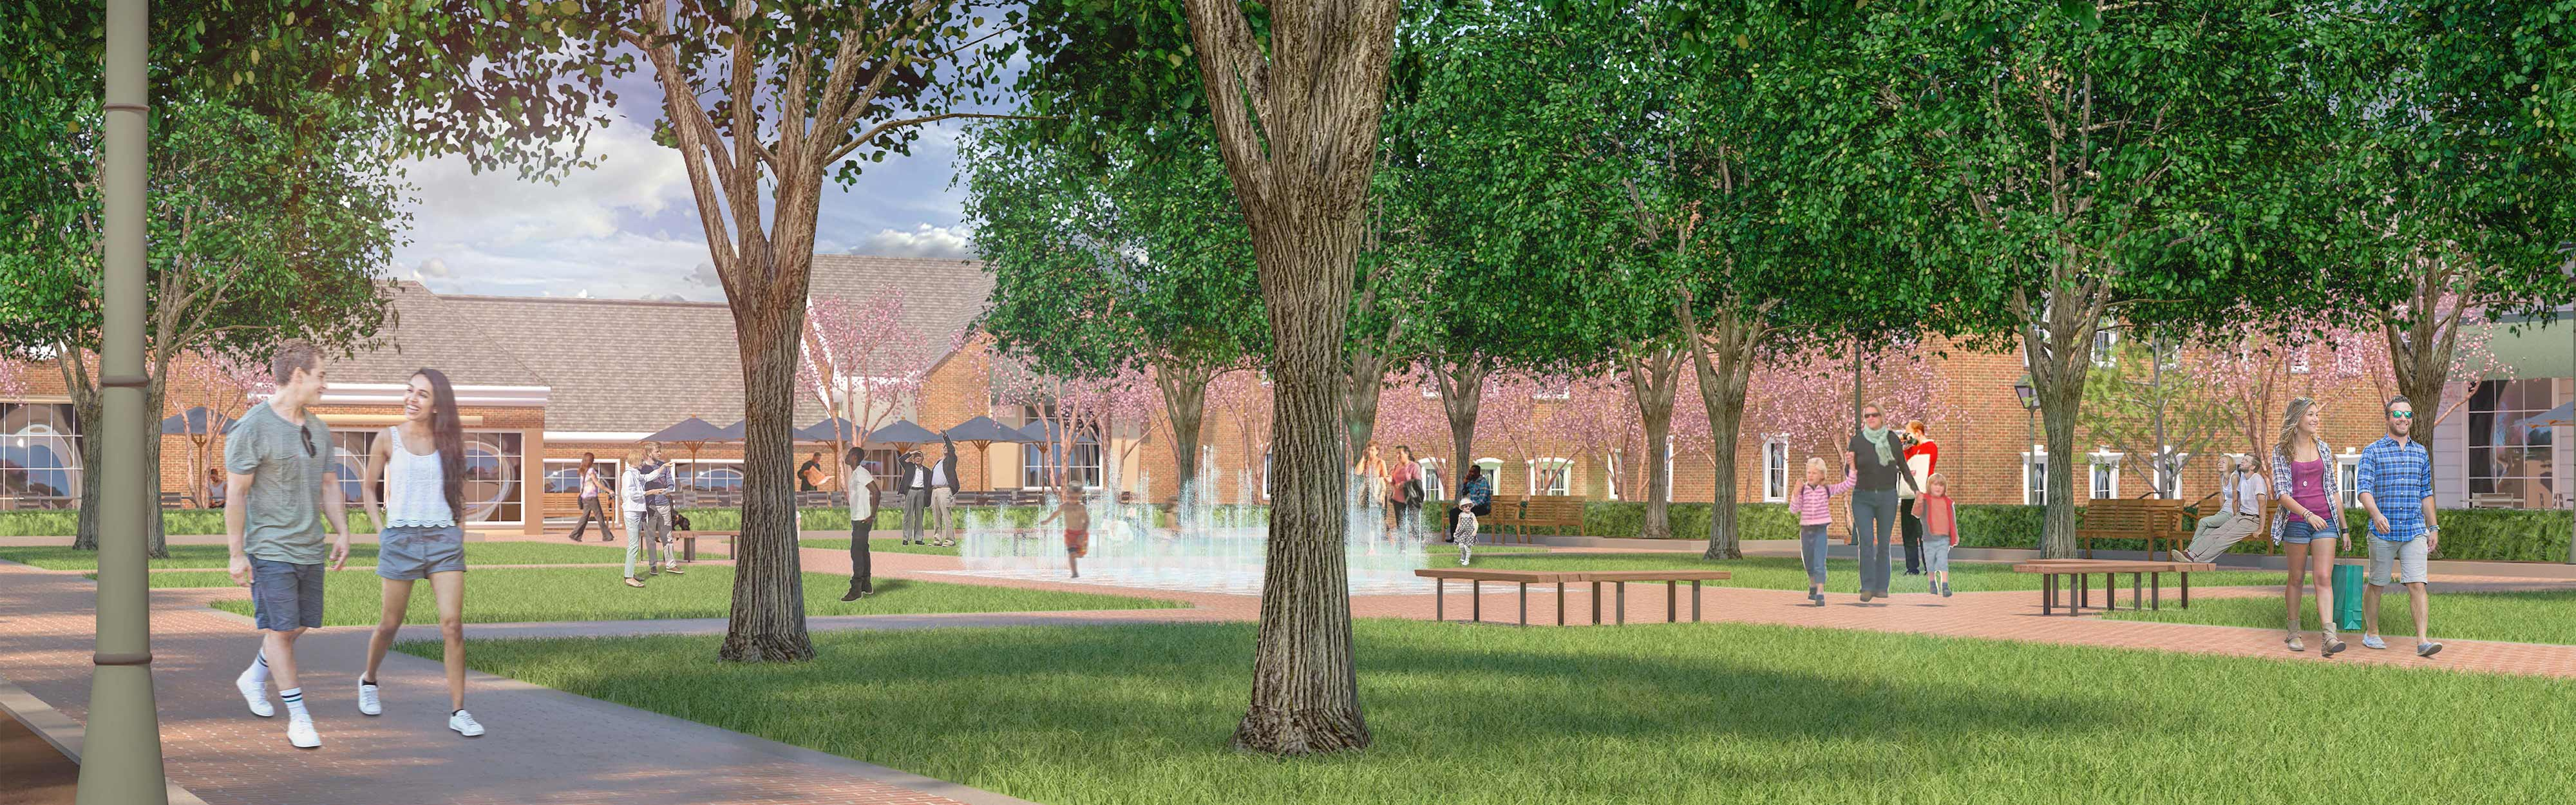 Merchants Square in Williamsburg, VA, includes green space, walking paths, and benches.